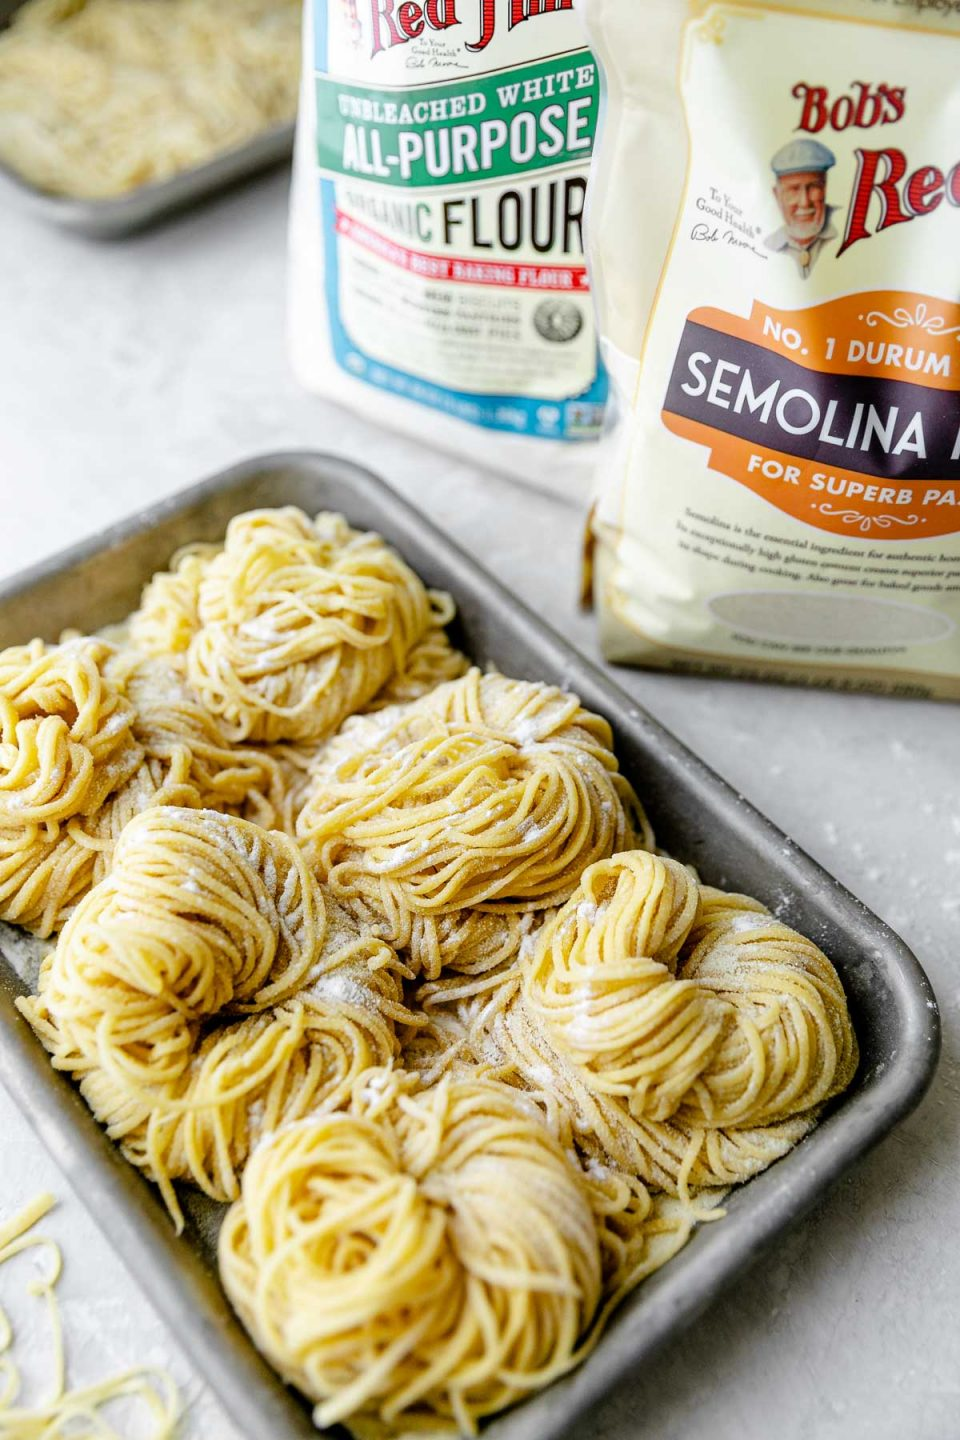 A side angle shot of six bundles of fresh pasta cut into spaghetti noodles are arranged on a small aluminum baking sheet and dusted with semolina flour. The baking sheet sits atop a white textured surface. A few stray noodles, one bag of Bob's Red Mill Organic Unbleached White All-Purpose flour, Bob's Red Mill Semolina flour, & another aluminum baking sheet filled with fresh pasta noodles surround the baking sheet.